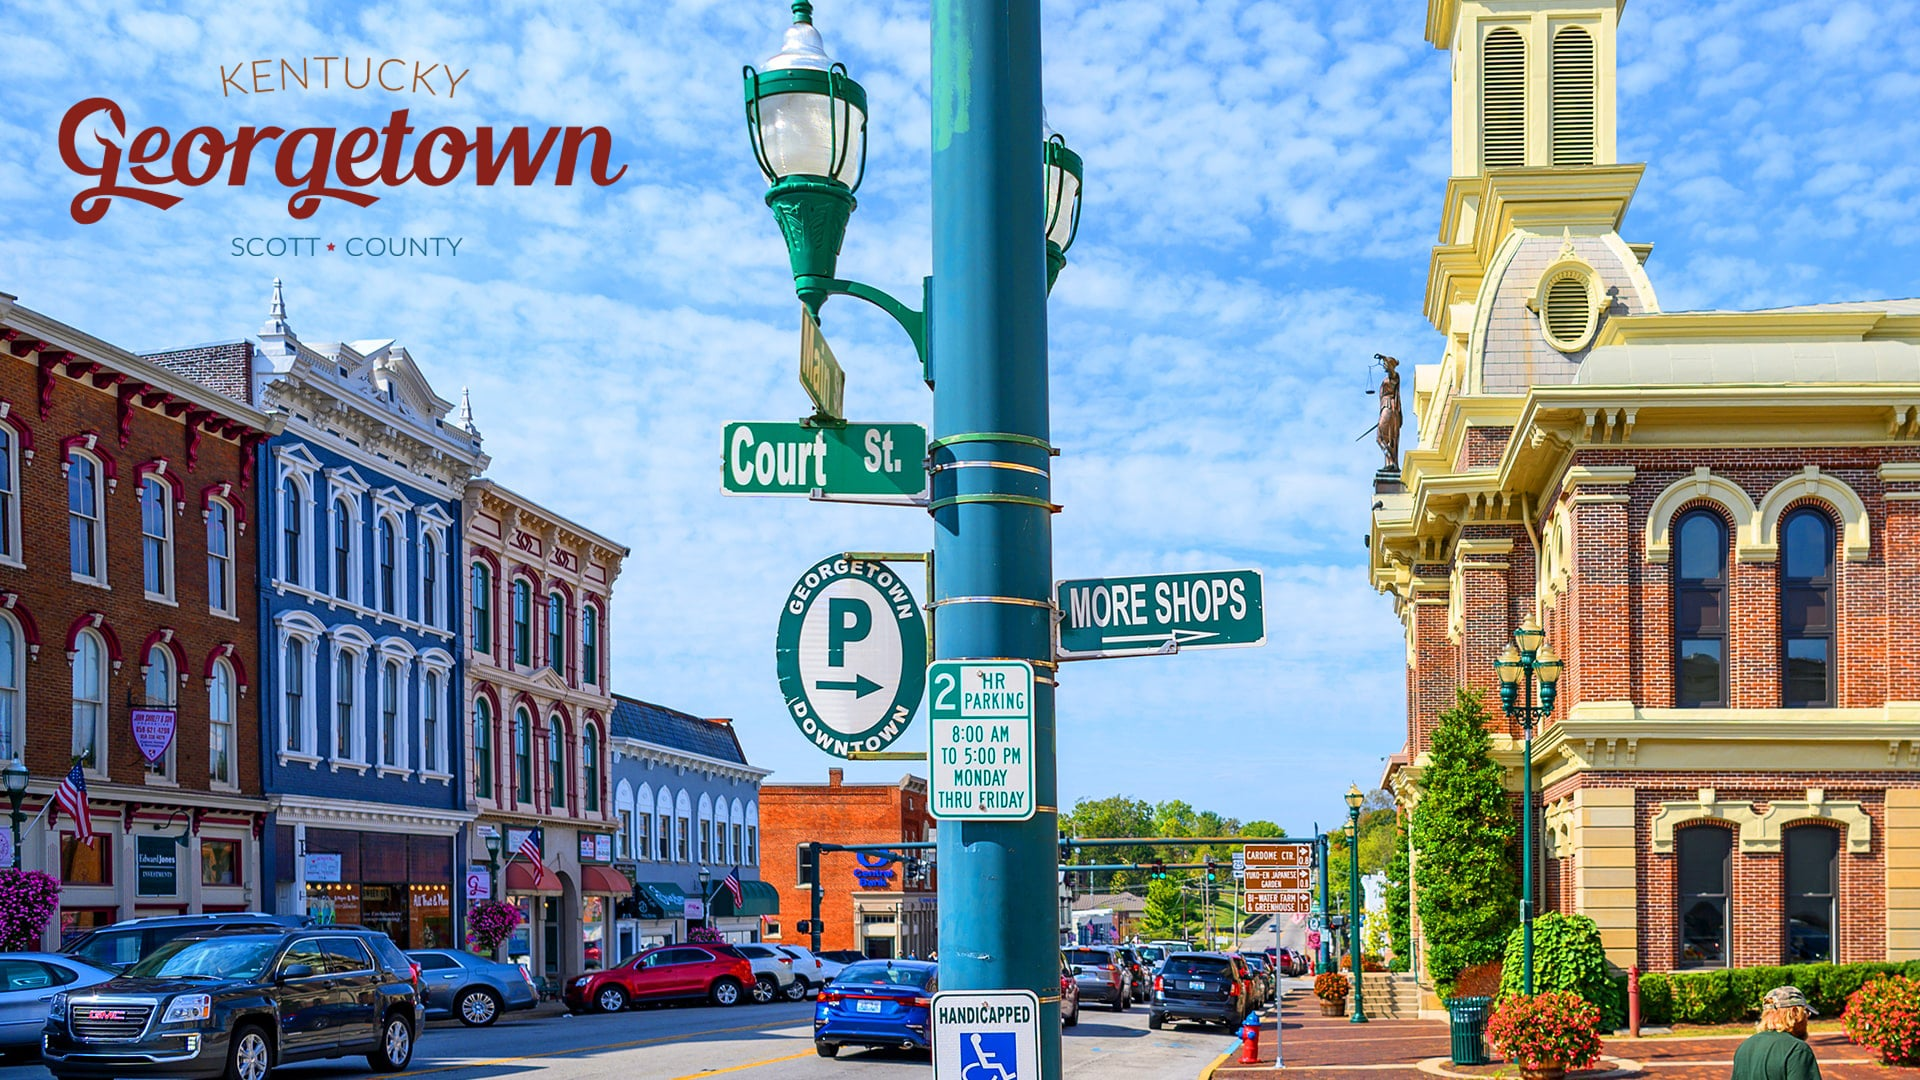 DowntownGeorgetown